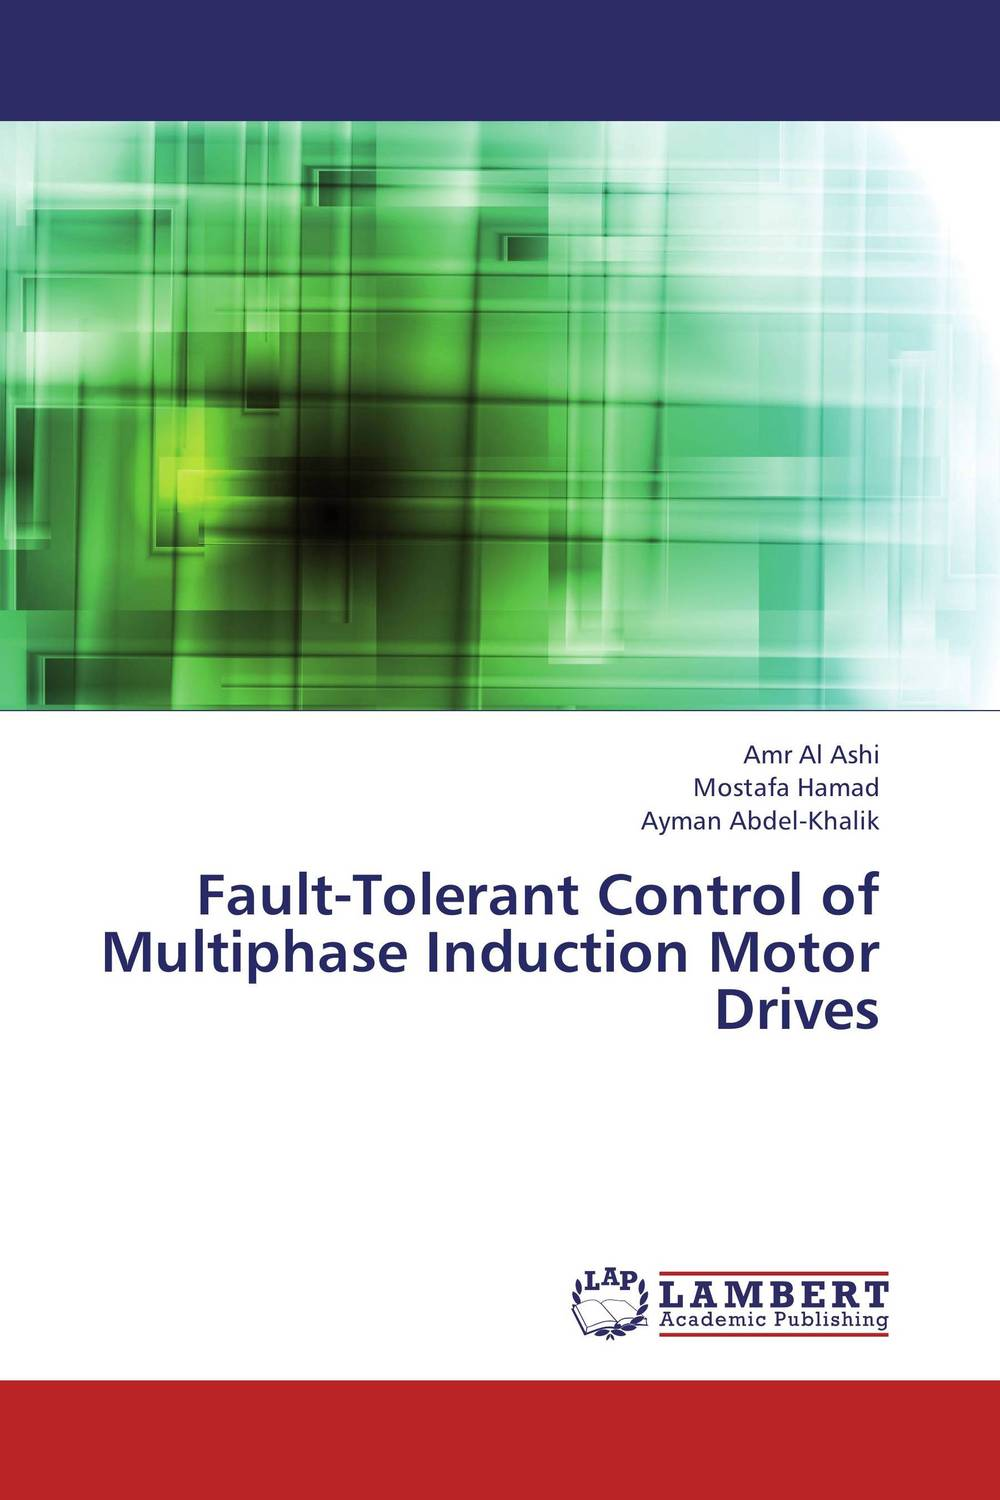 Fault-Tolerant Control of Multiphase Induction Motor Drives